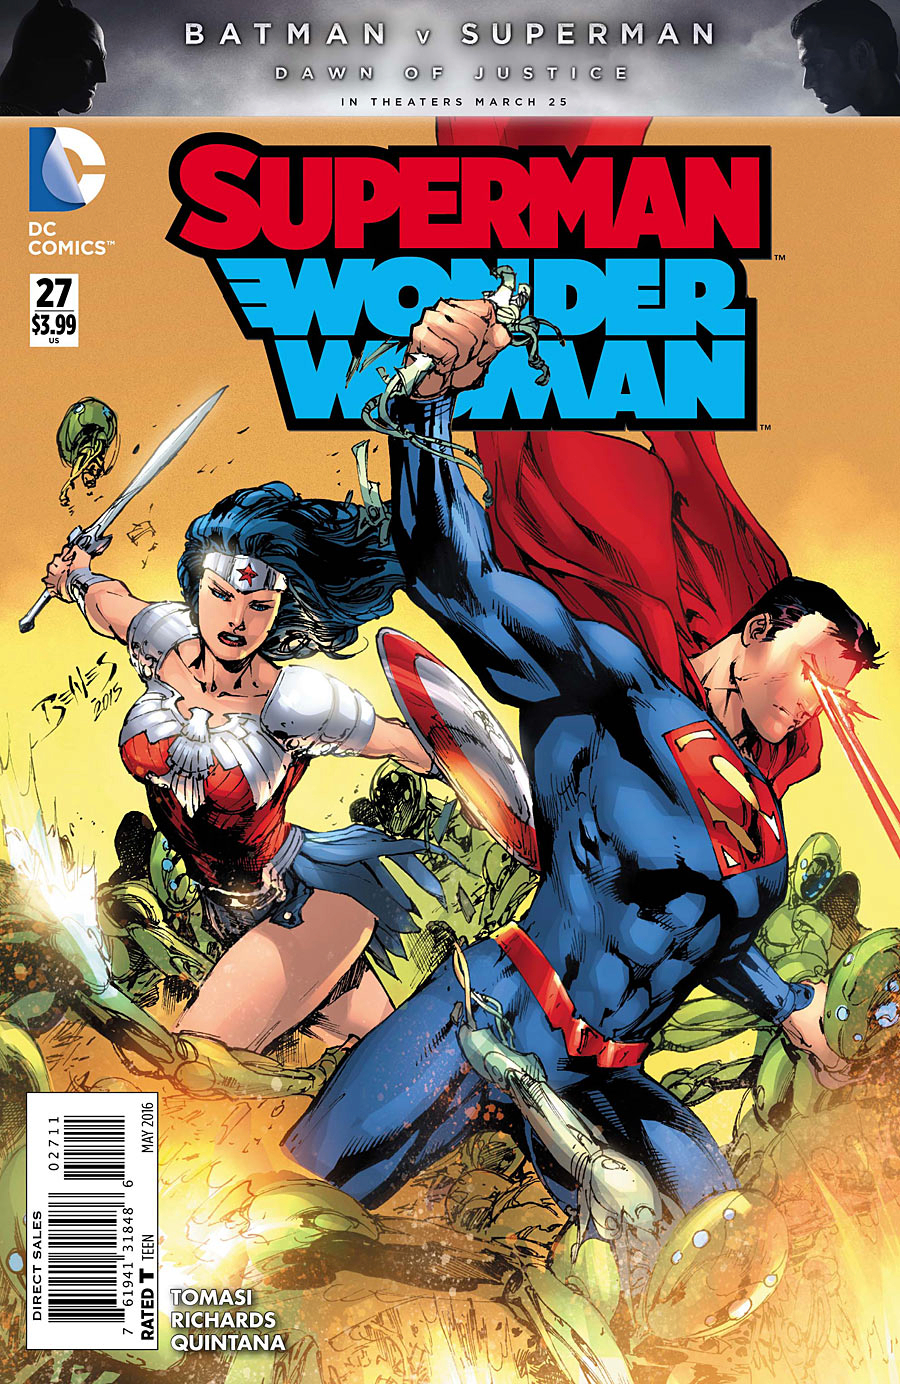 SUPERMAN WONDER WOMAN #27